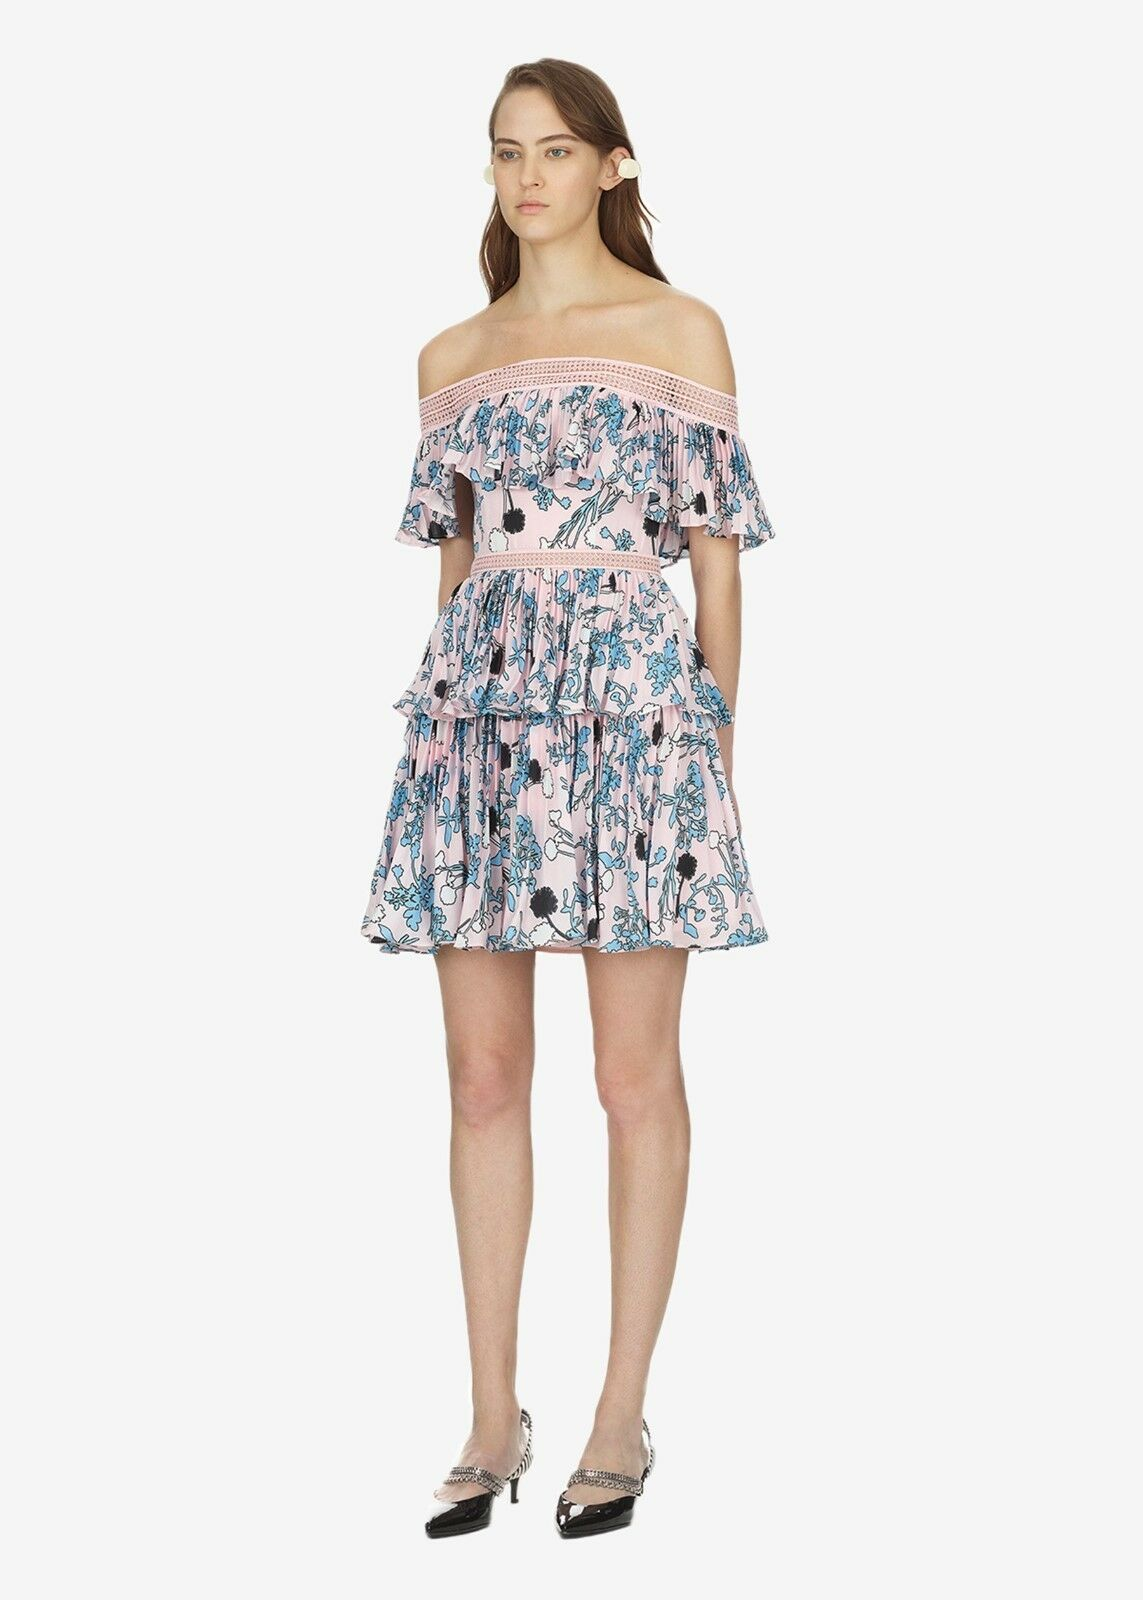 Self Portrait Off Shoulder Floral Printed Mini Dress